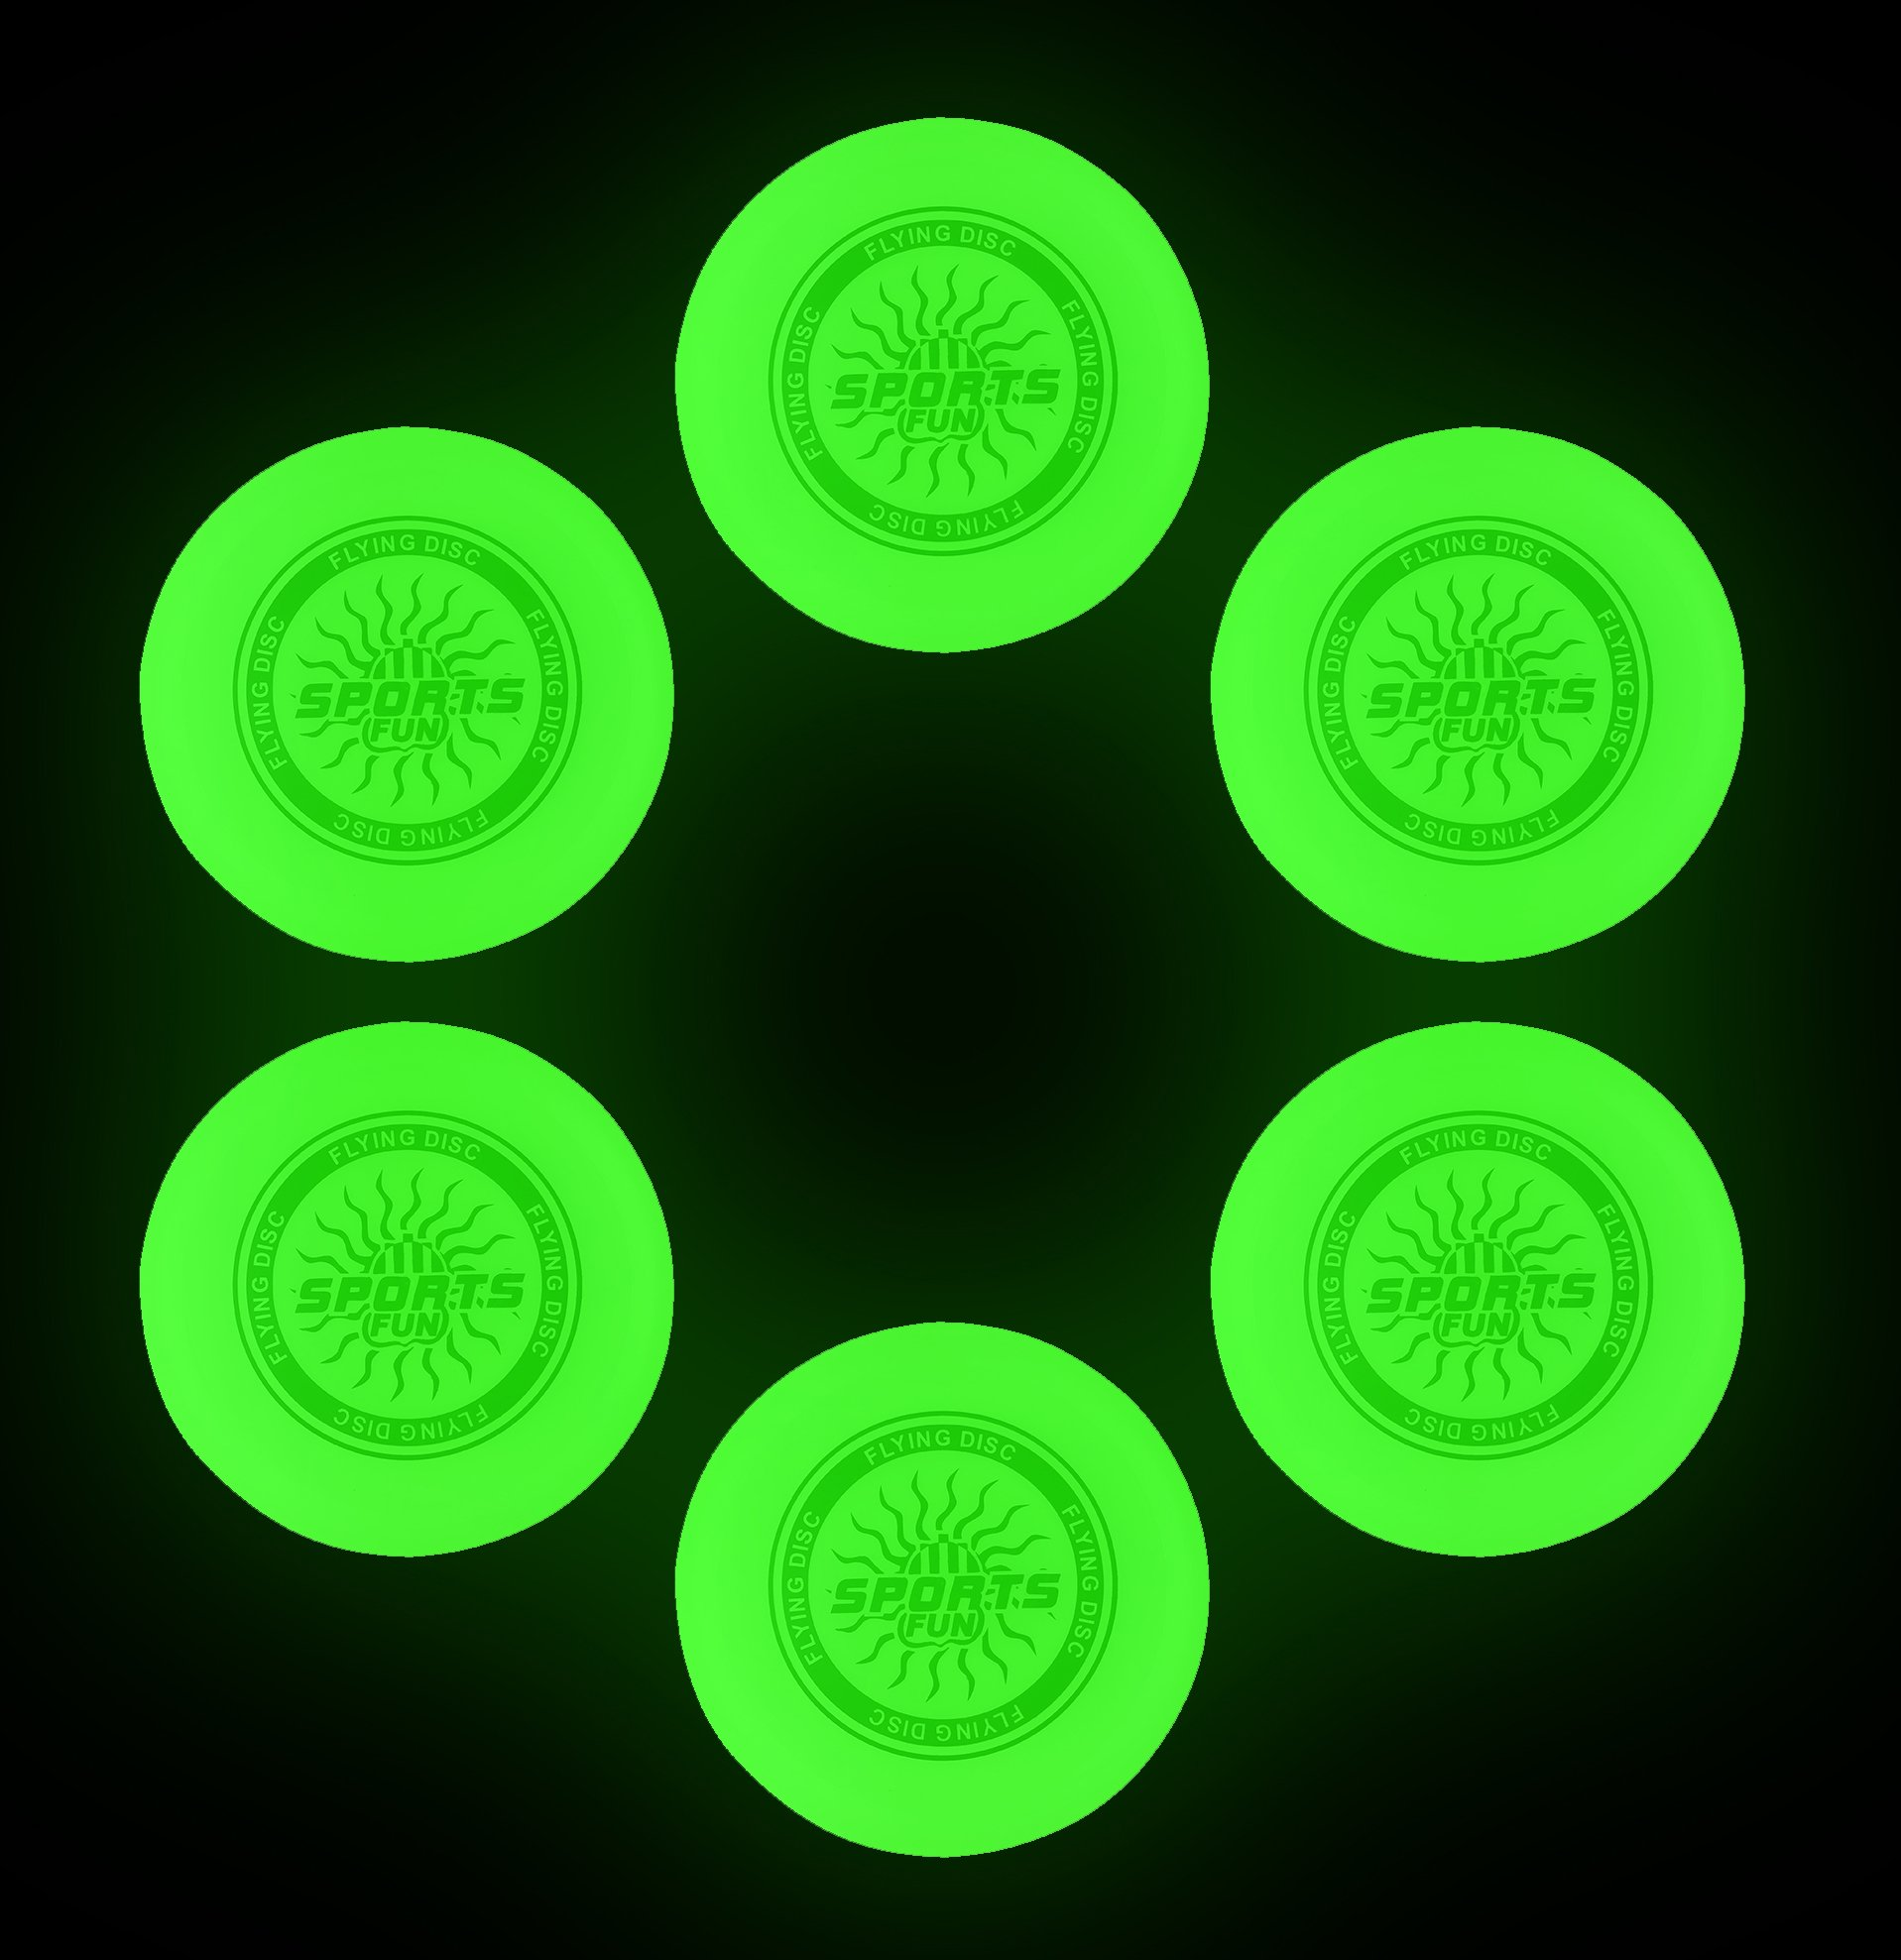 9'' Light Up Plastic Flying Sports Discs, Glow in the Dark for Night Games (Set of 6) by Liberty Imports